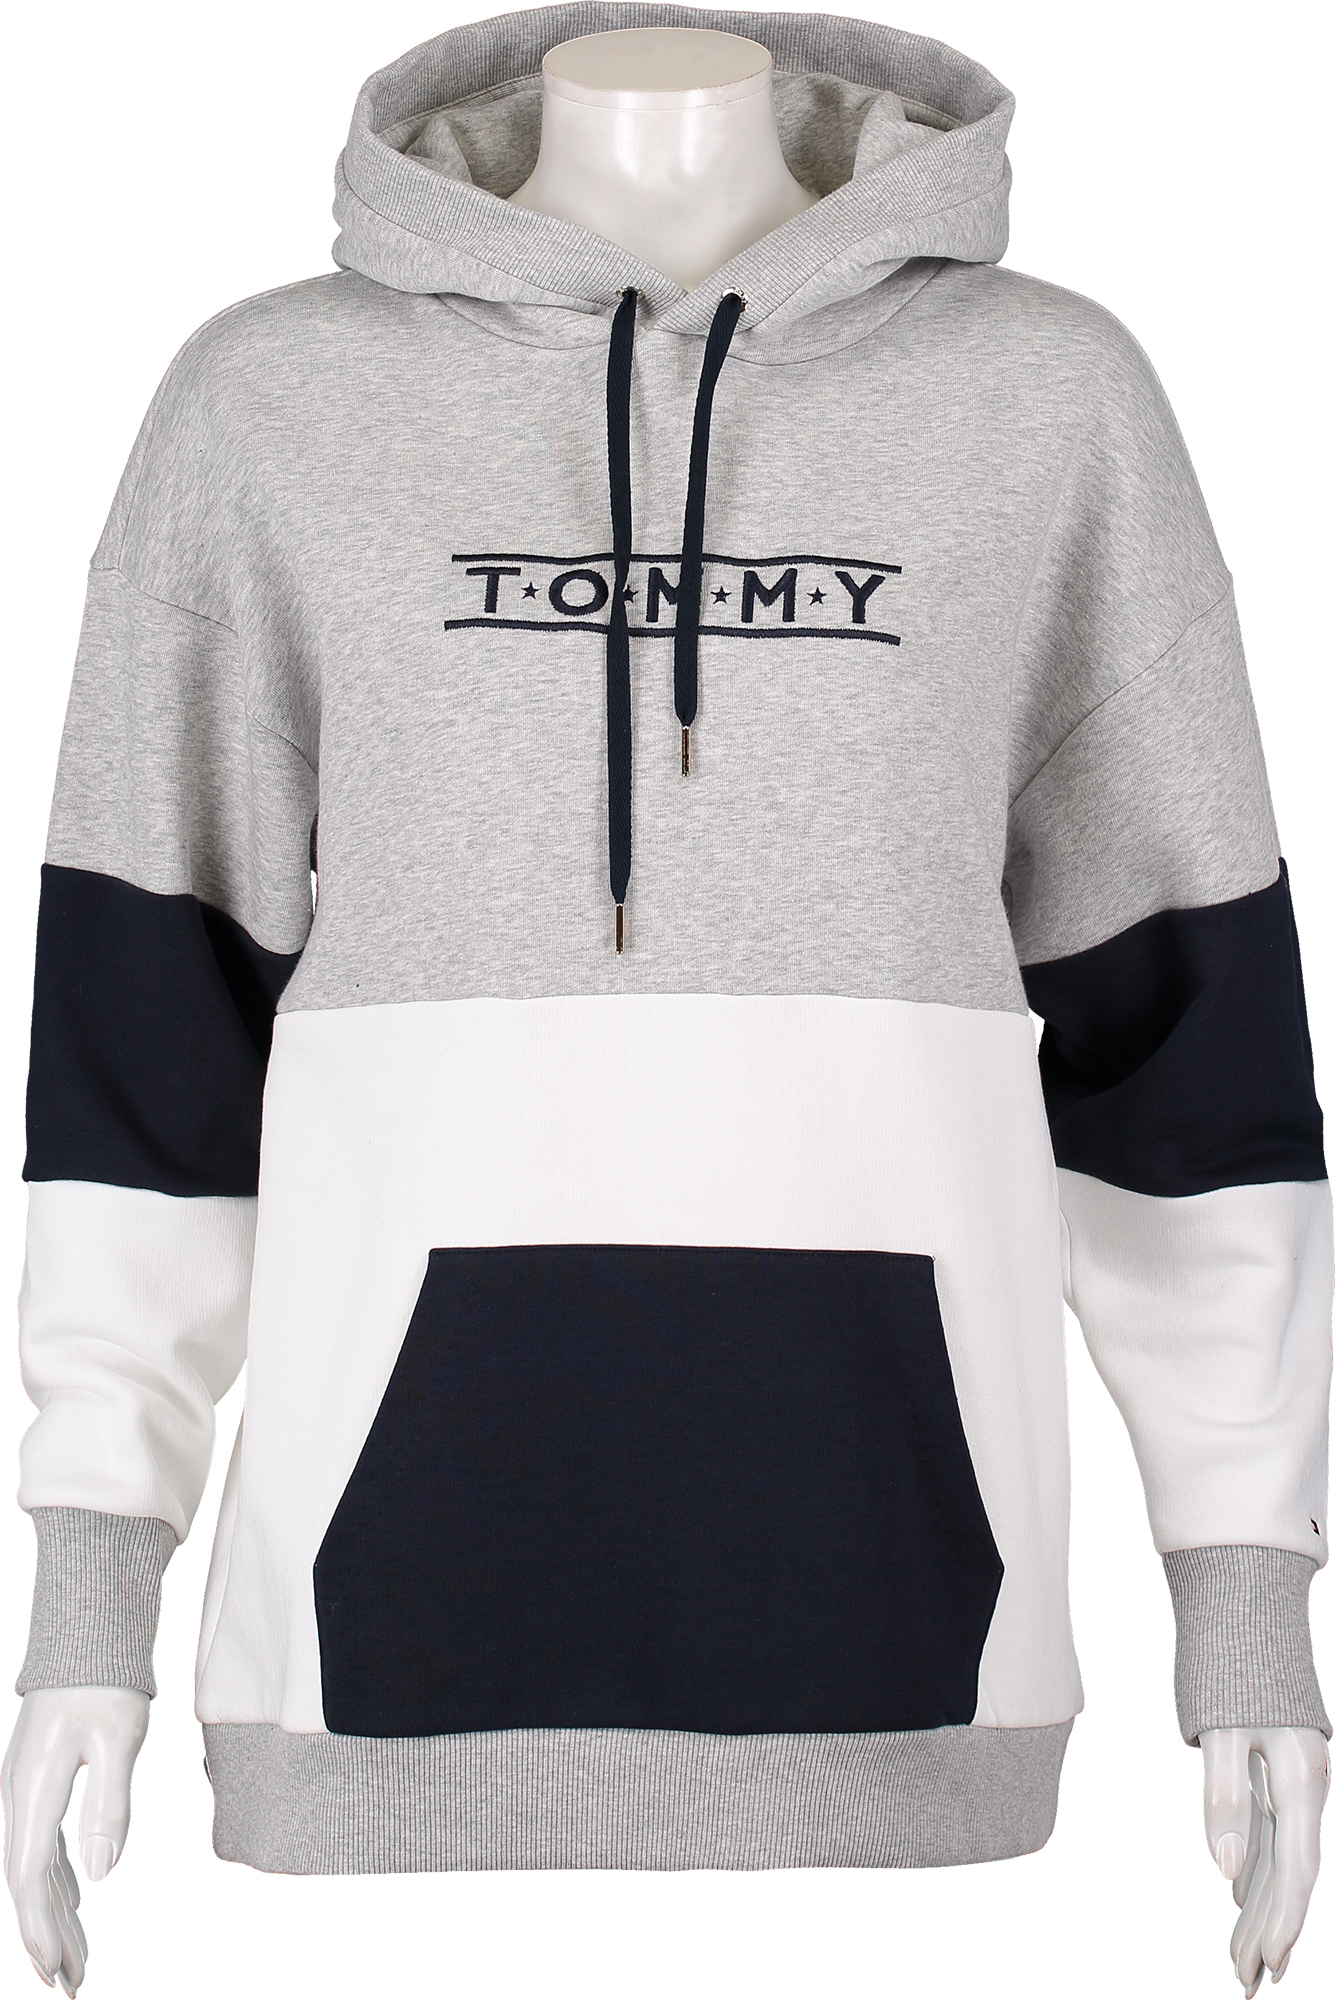 Piet Zoomers, Tommy Hilfiger dames sweater